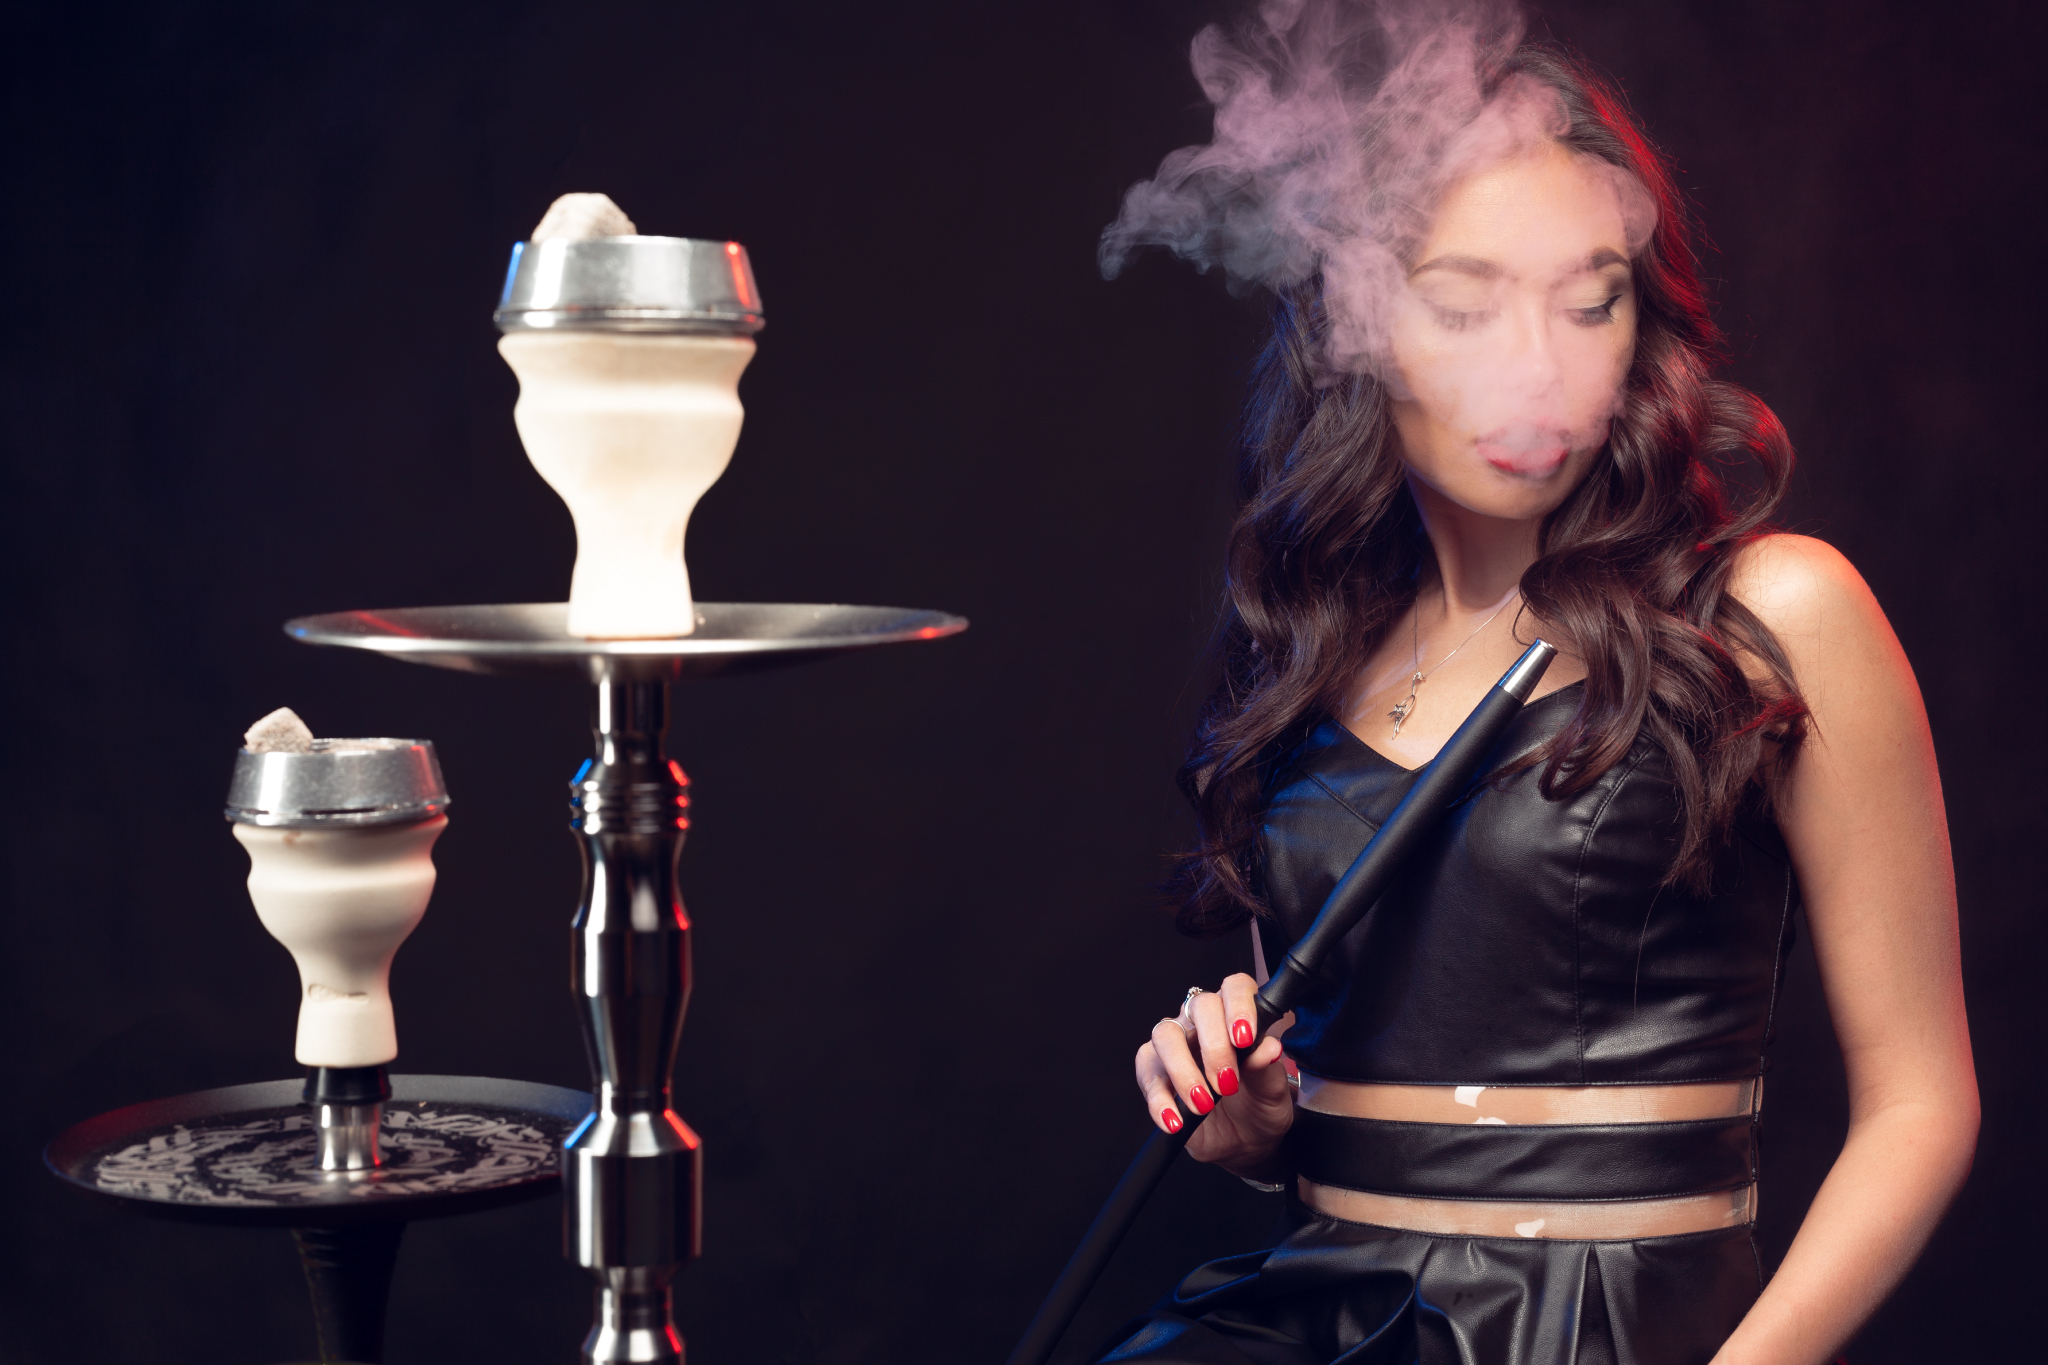 Woman exhaling smoke from hookah with black background.